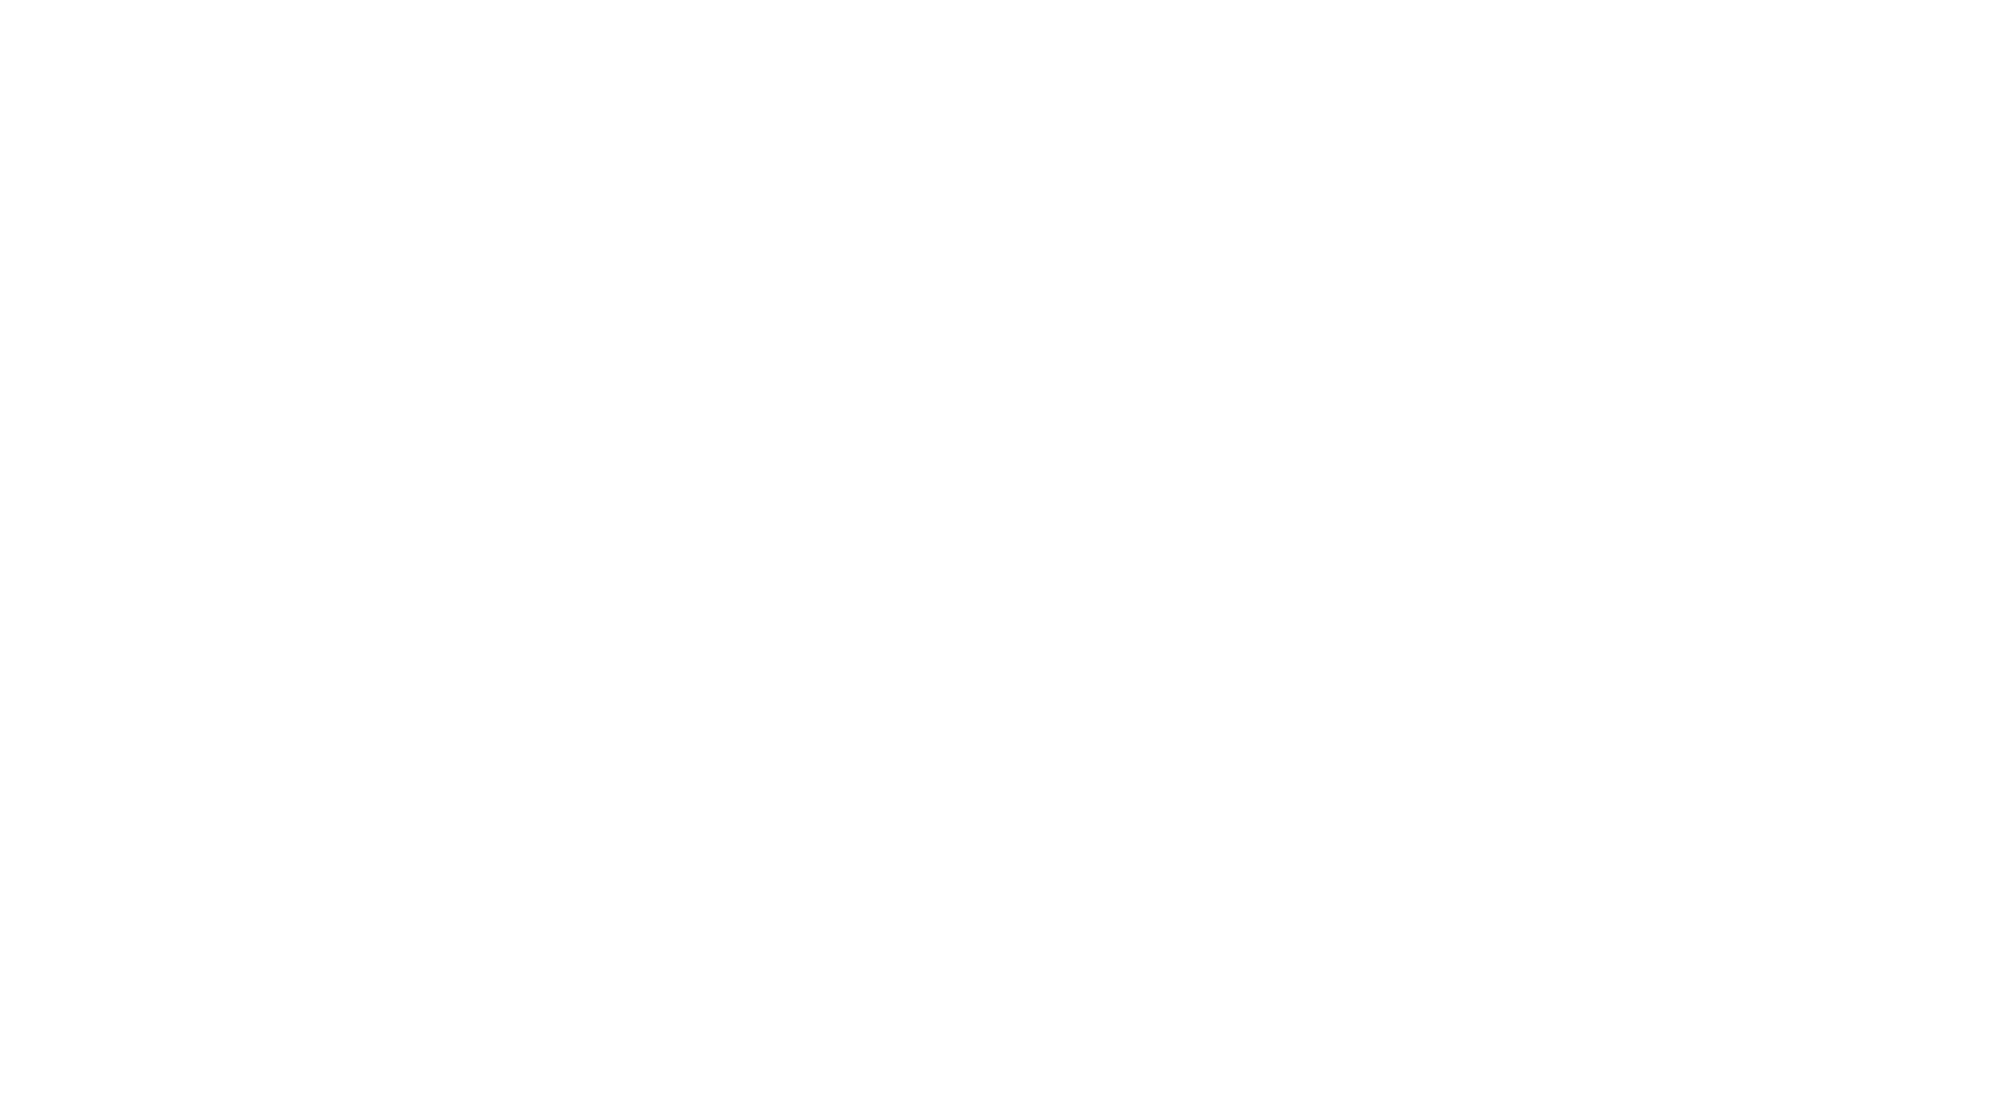 Paul Roselli - Democrat for Governor of Rhode Island